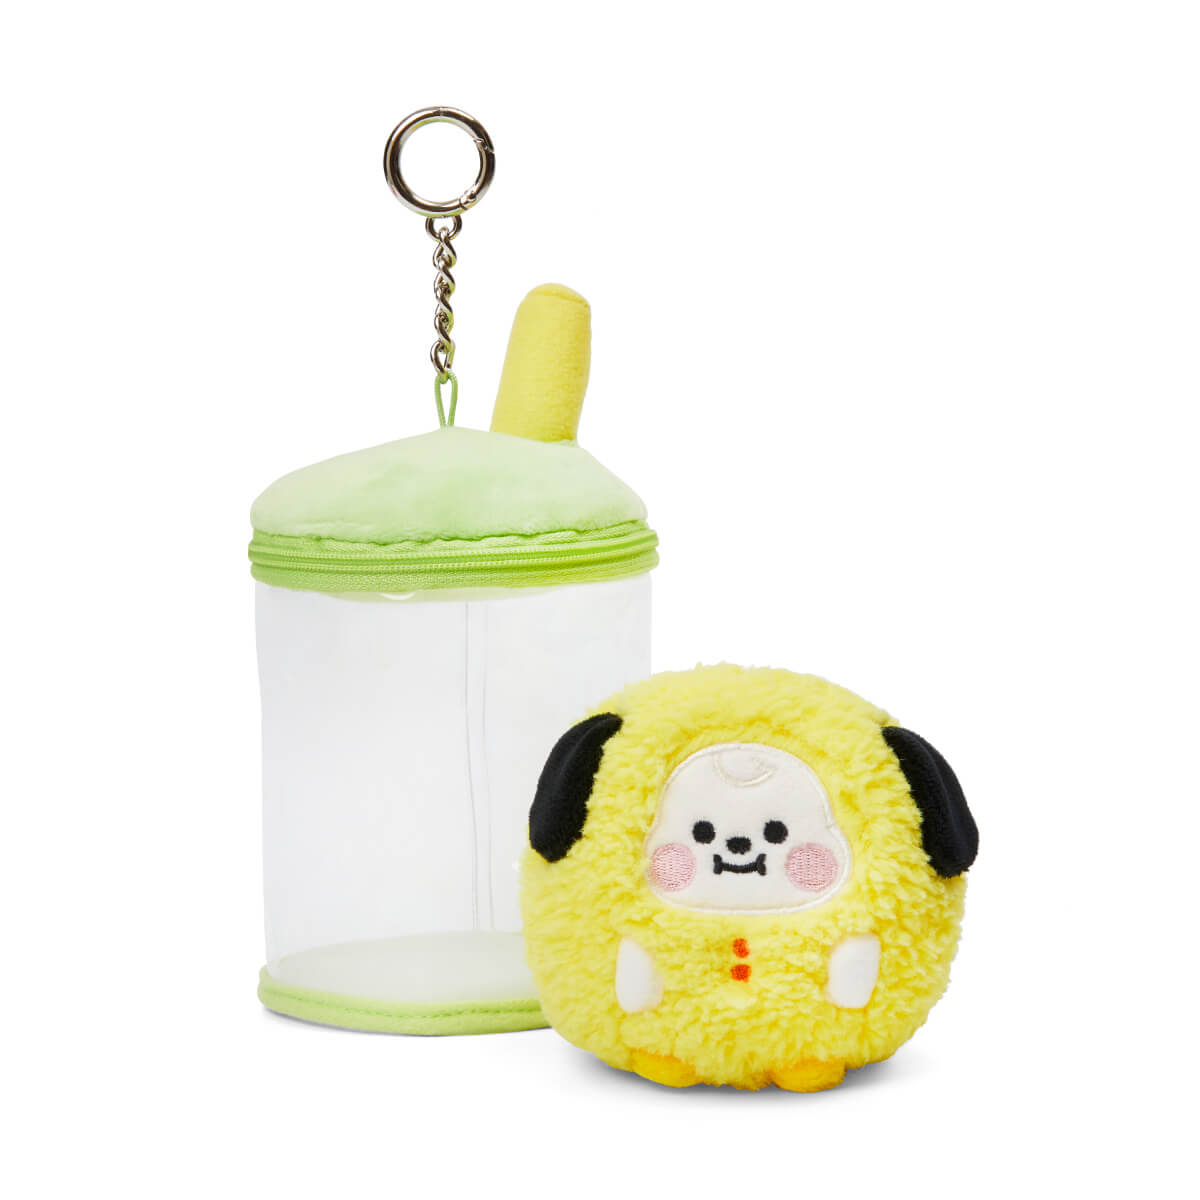 BT21 CHIMMY BABY Boucle Bubble Tea Doll Bag Charm